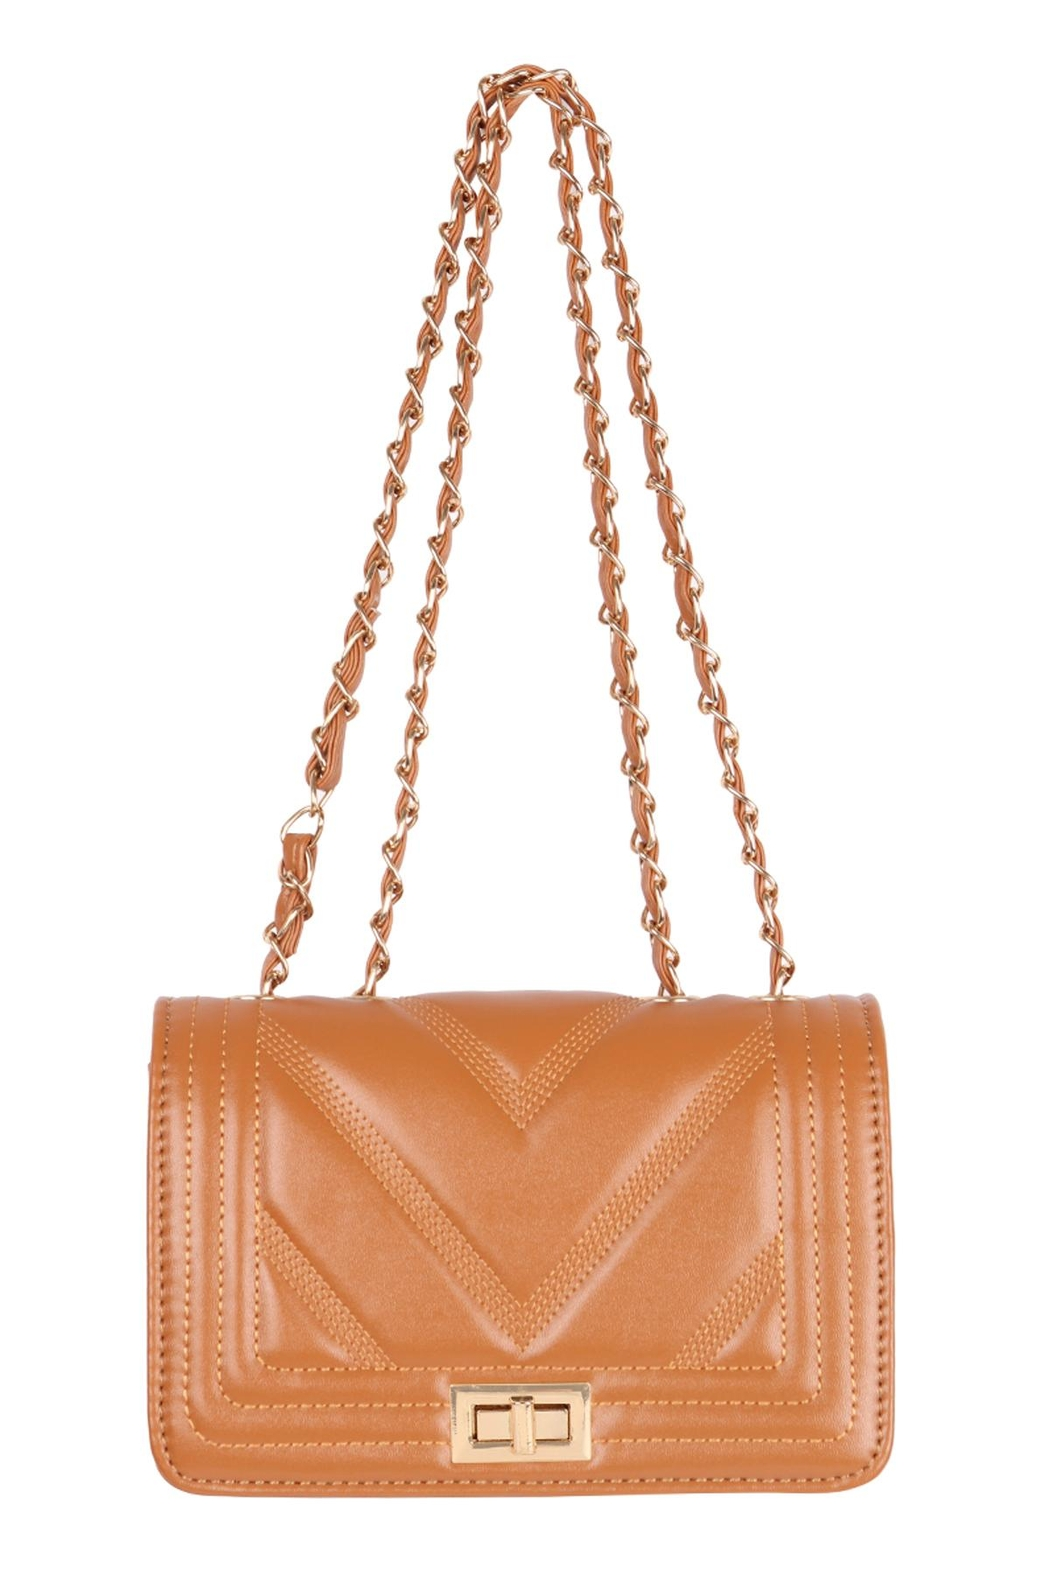 Riah Fashion Quilted-Designe-Leather-Fahion-Bag-Cross-Body-Bag - Main Image